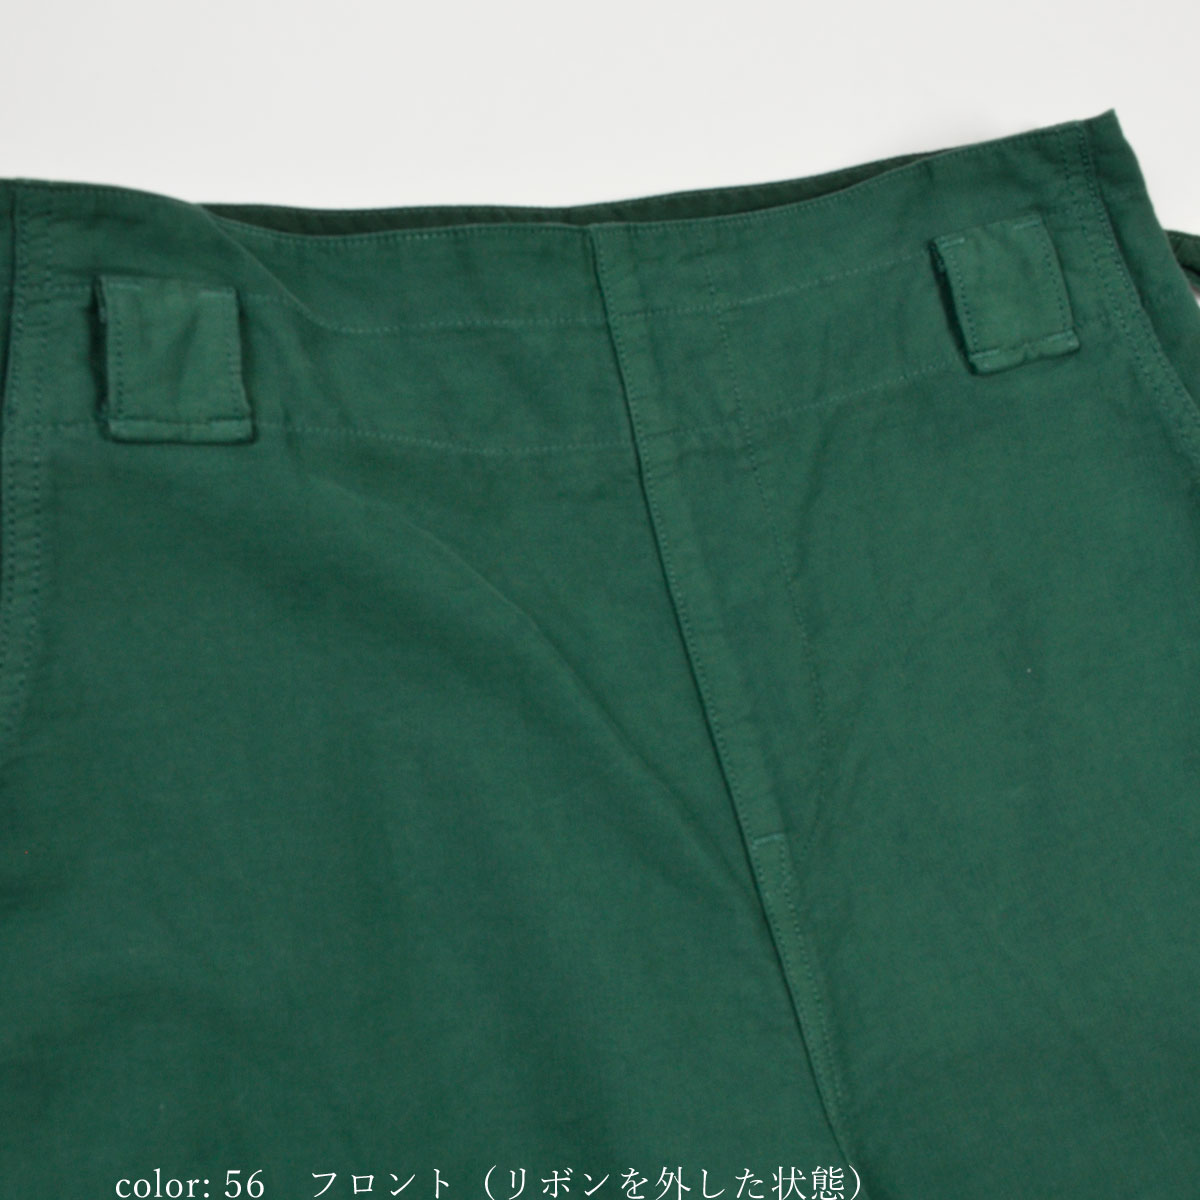 【SALE】Cafetty リボンジョッパーズ CF0322